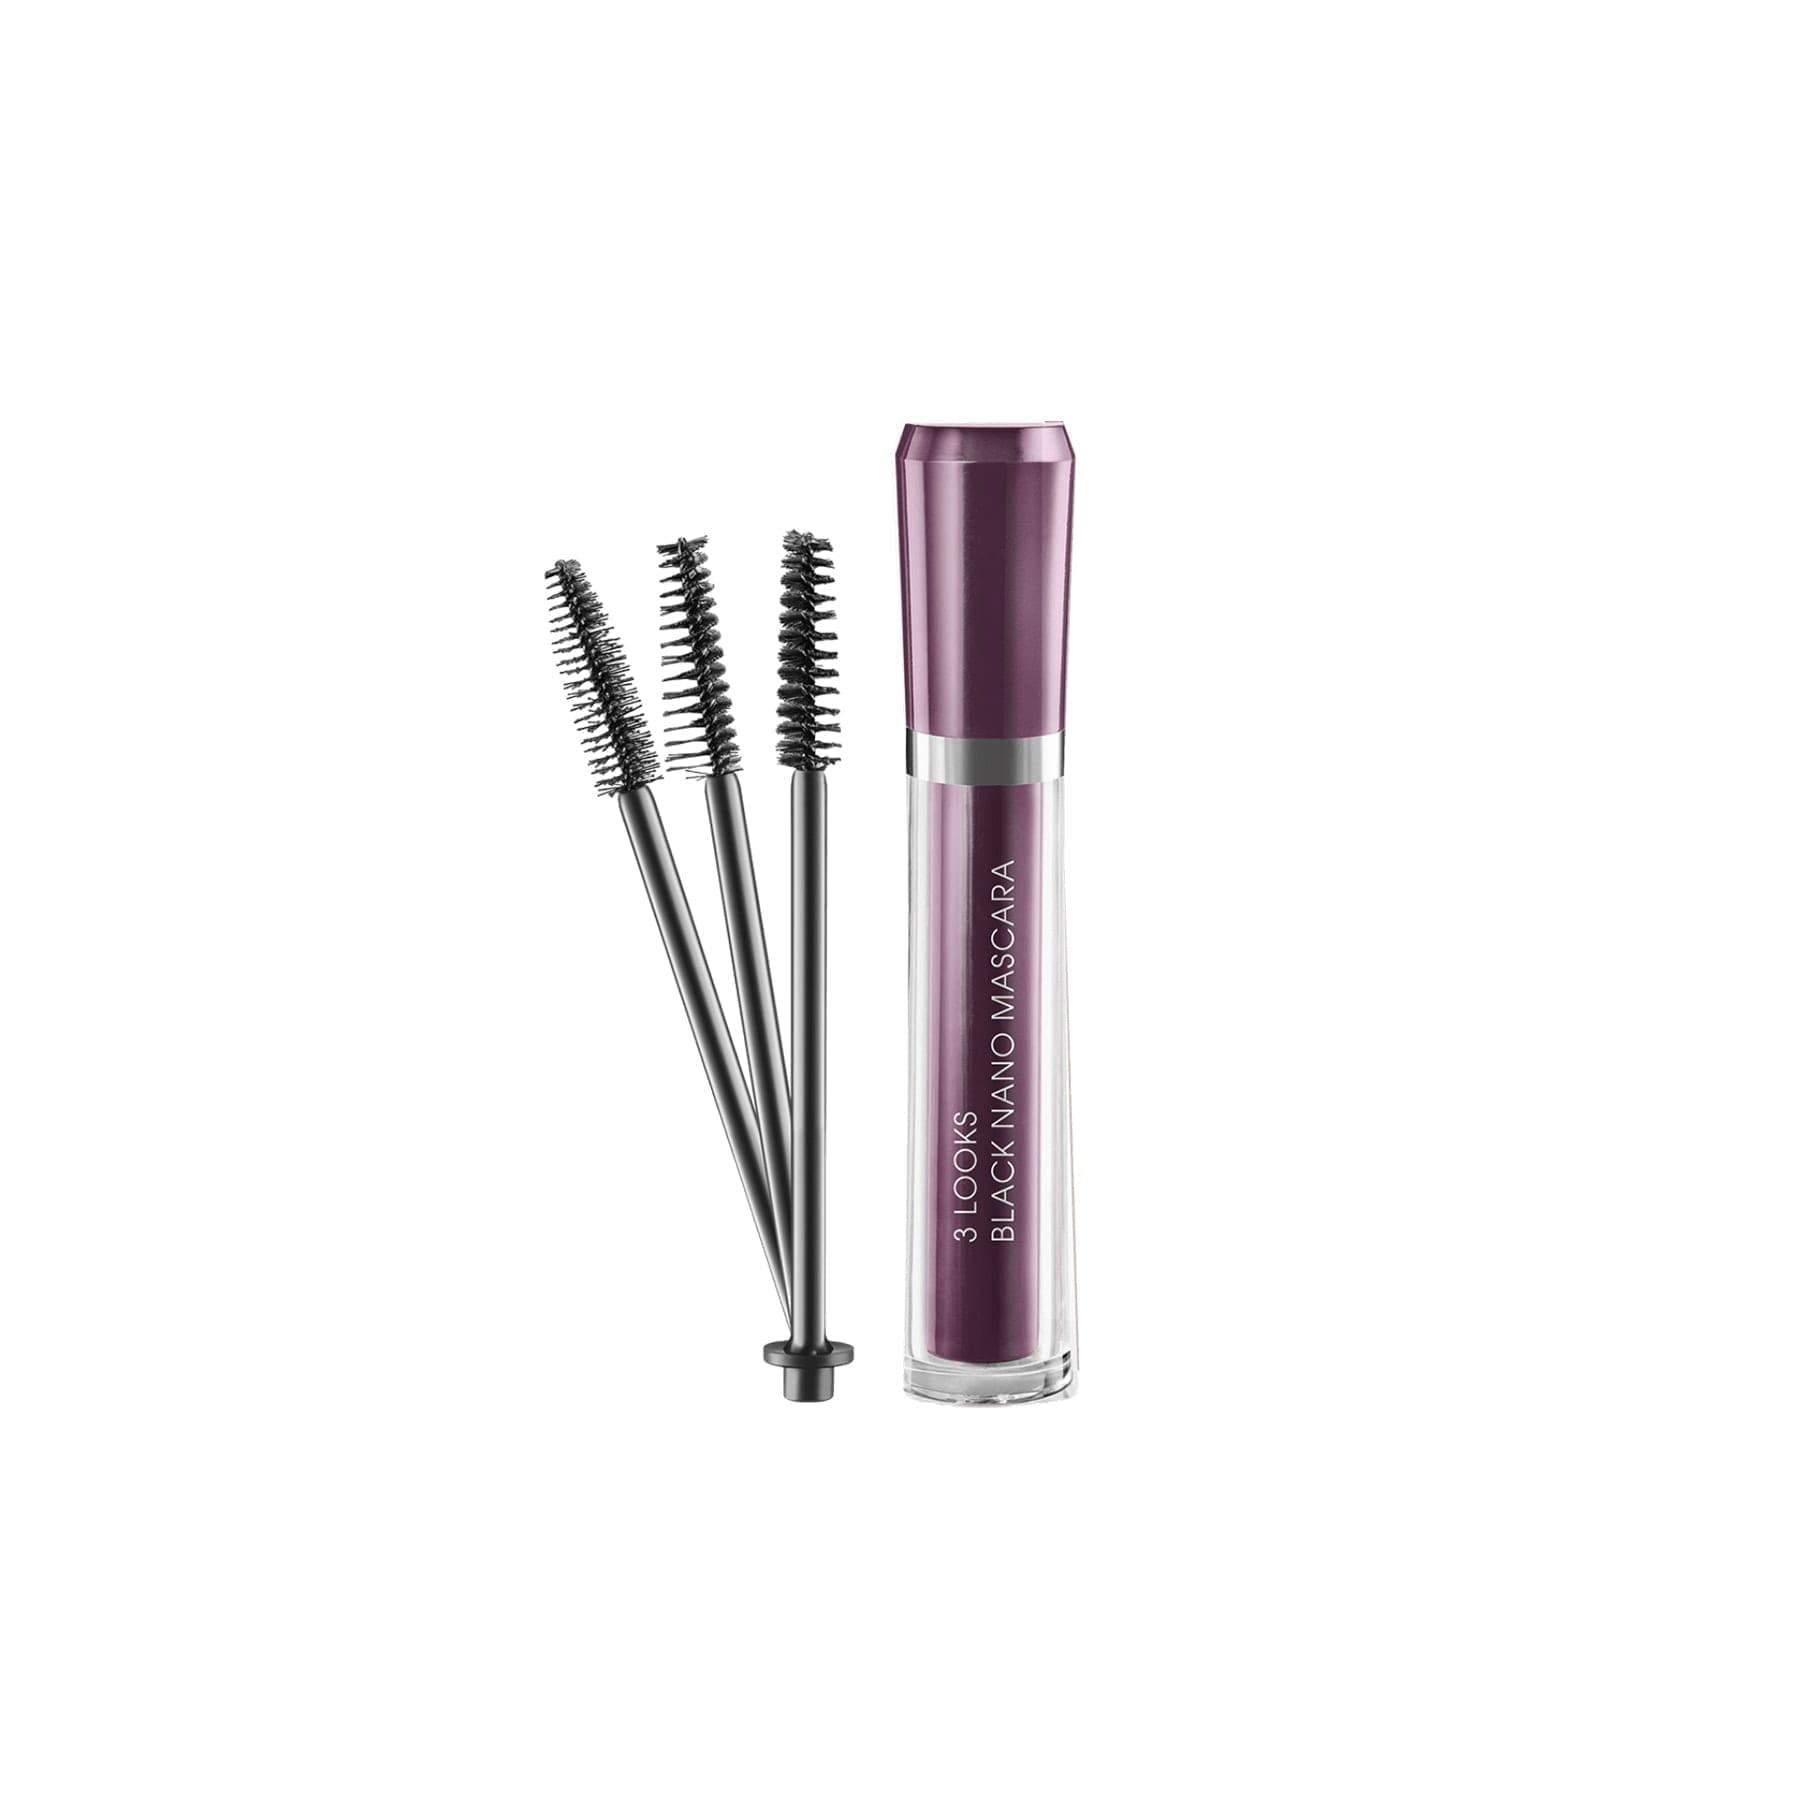 M2 Beauté - 3 LOOKS Black Nano Mascara 6 ml